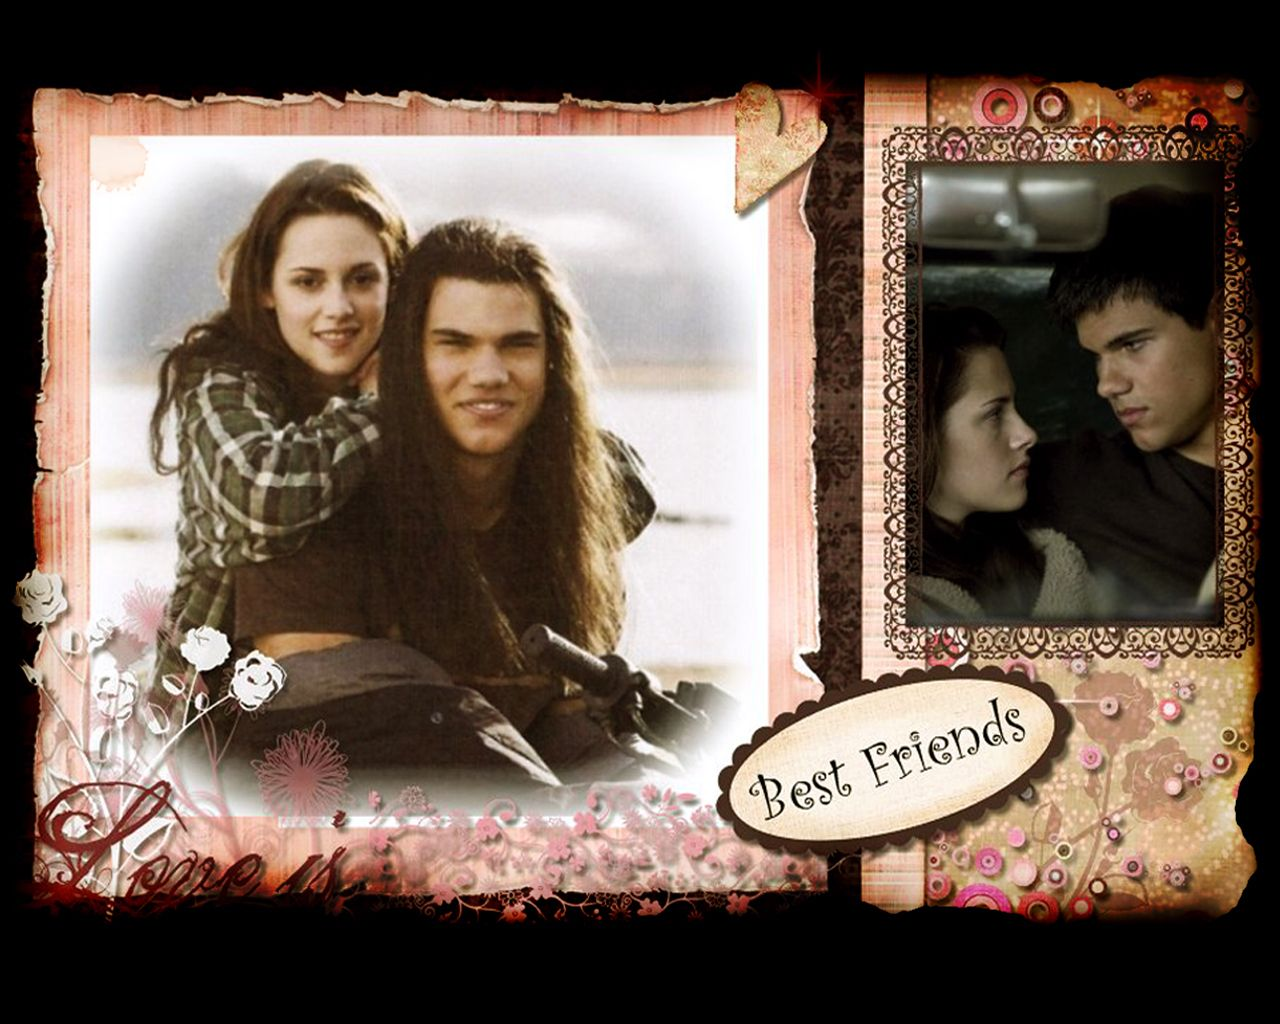 Scrapbook ideas for bff - Jacob And Bella Best Friends Scrapbook Page 1280x1024 Photo